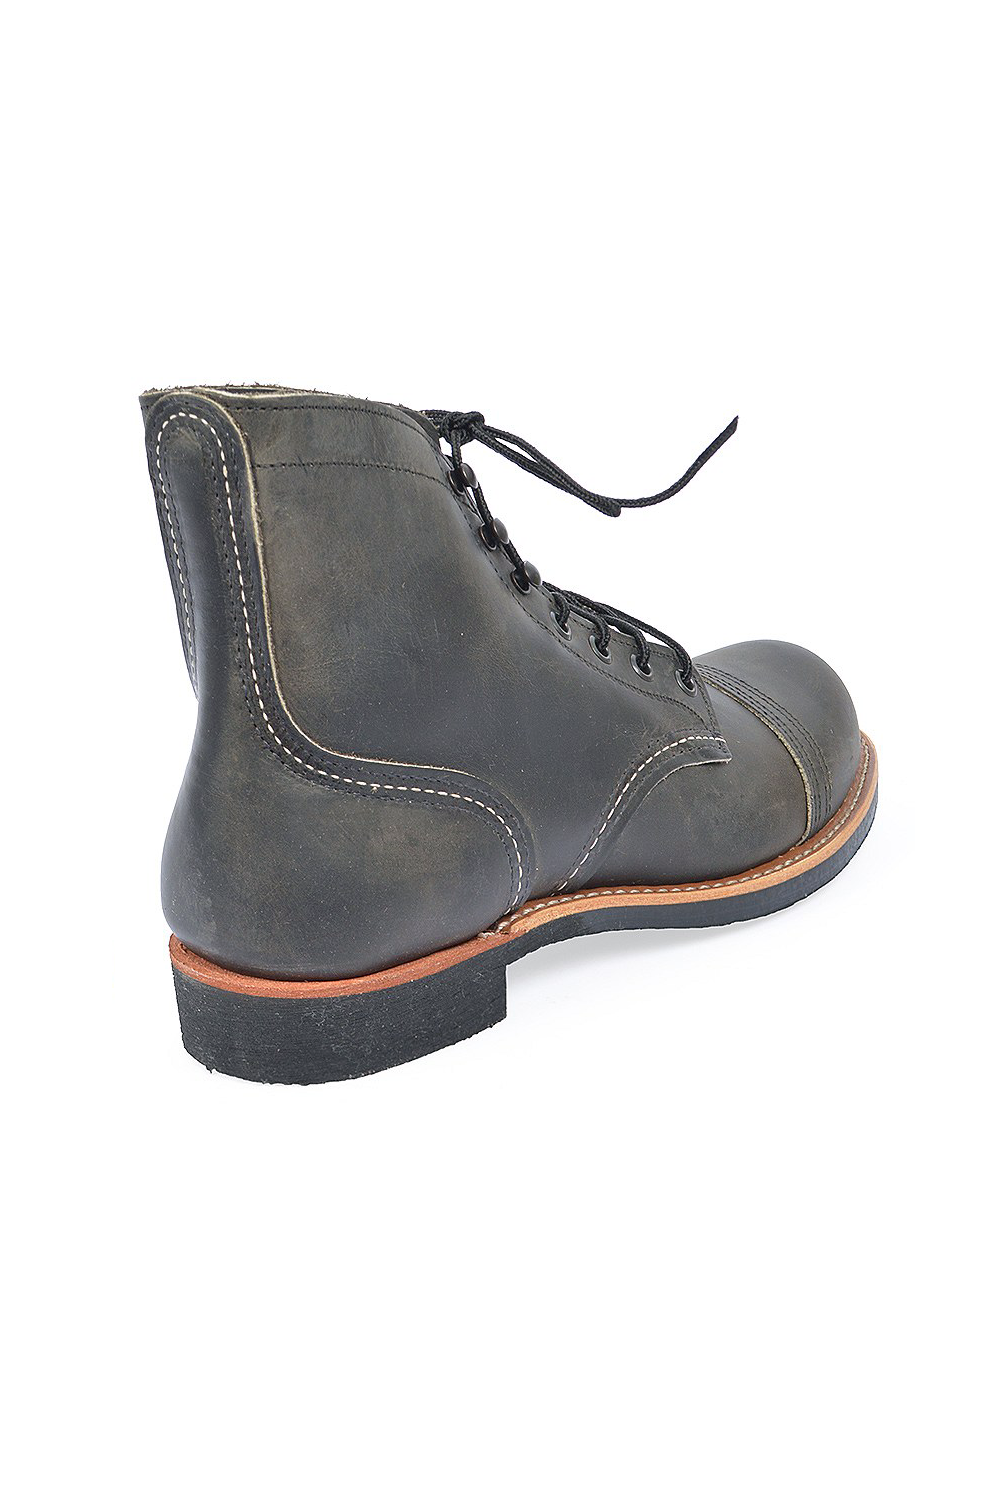 c1f5b087064 Men s Iron Ranger in Charcoal Rough   Tough from Red Wing Shoes